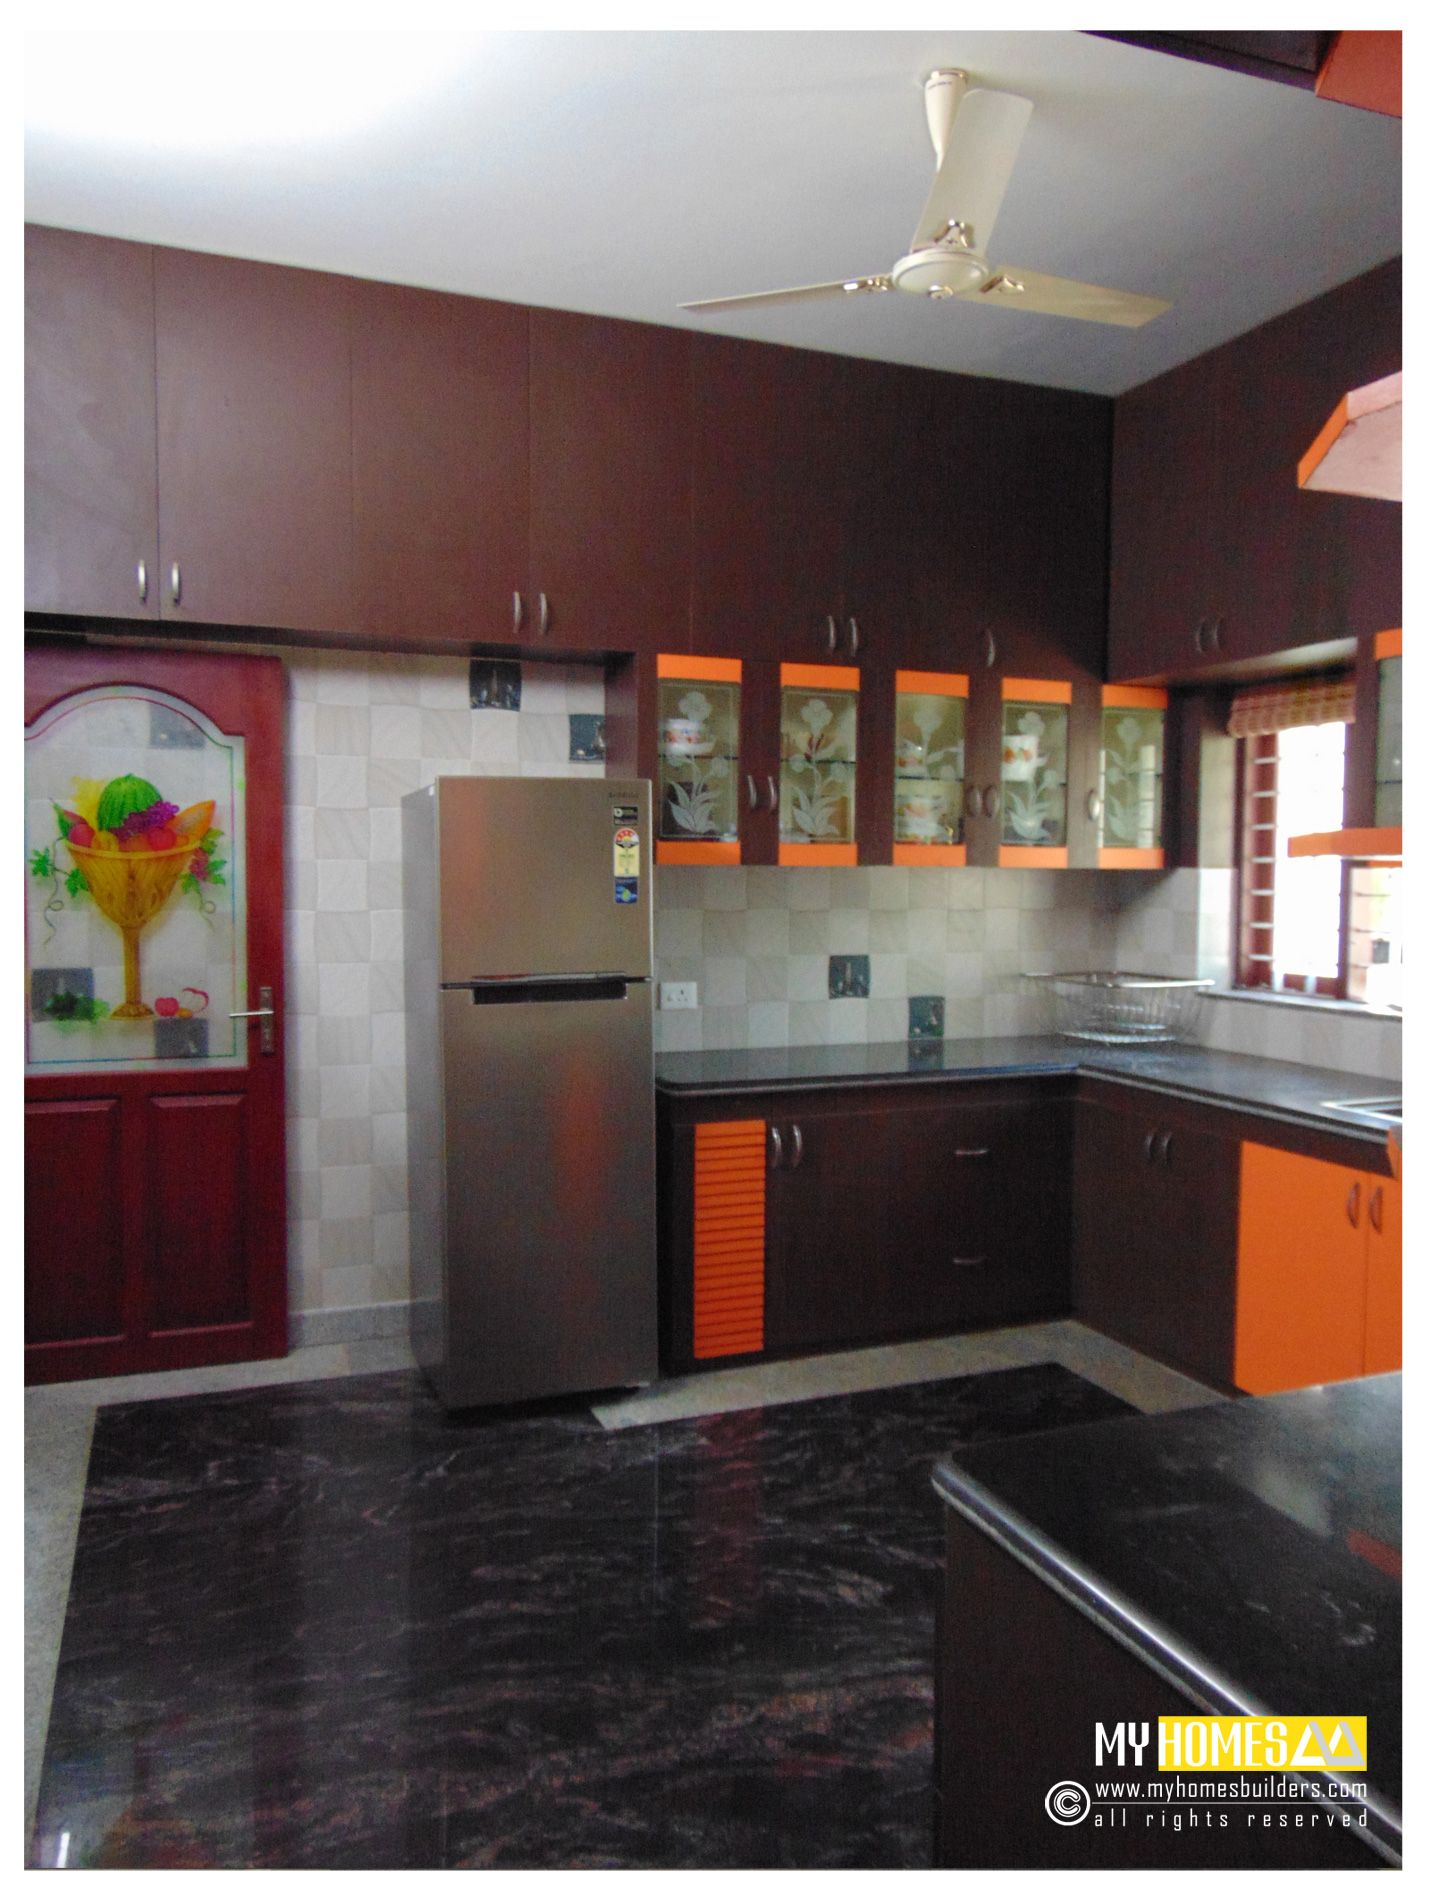 Kitchen Design In Kerala modern kitchen designs in kerala kerala modern kitchen interior